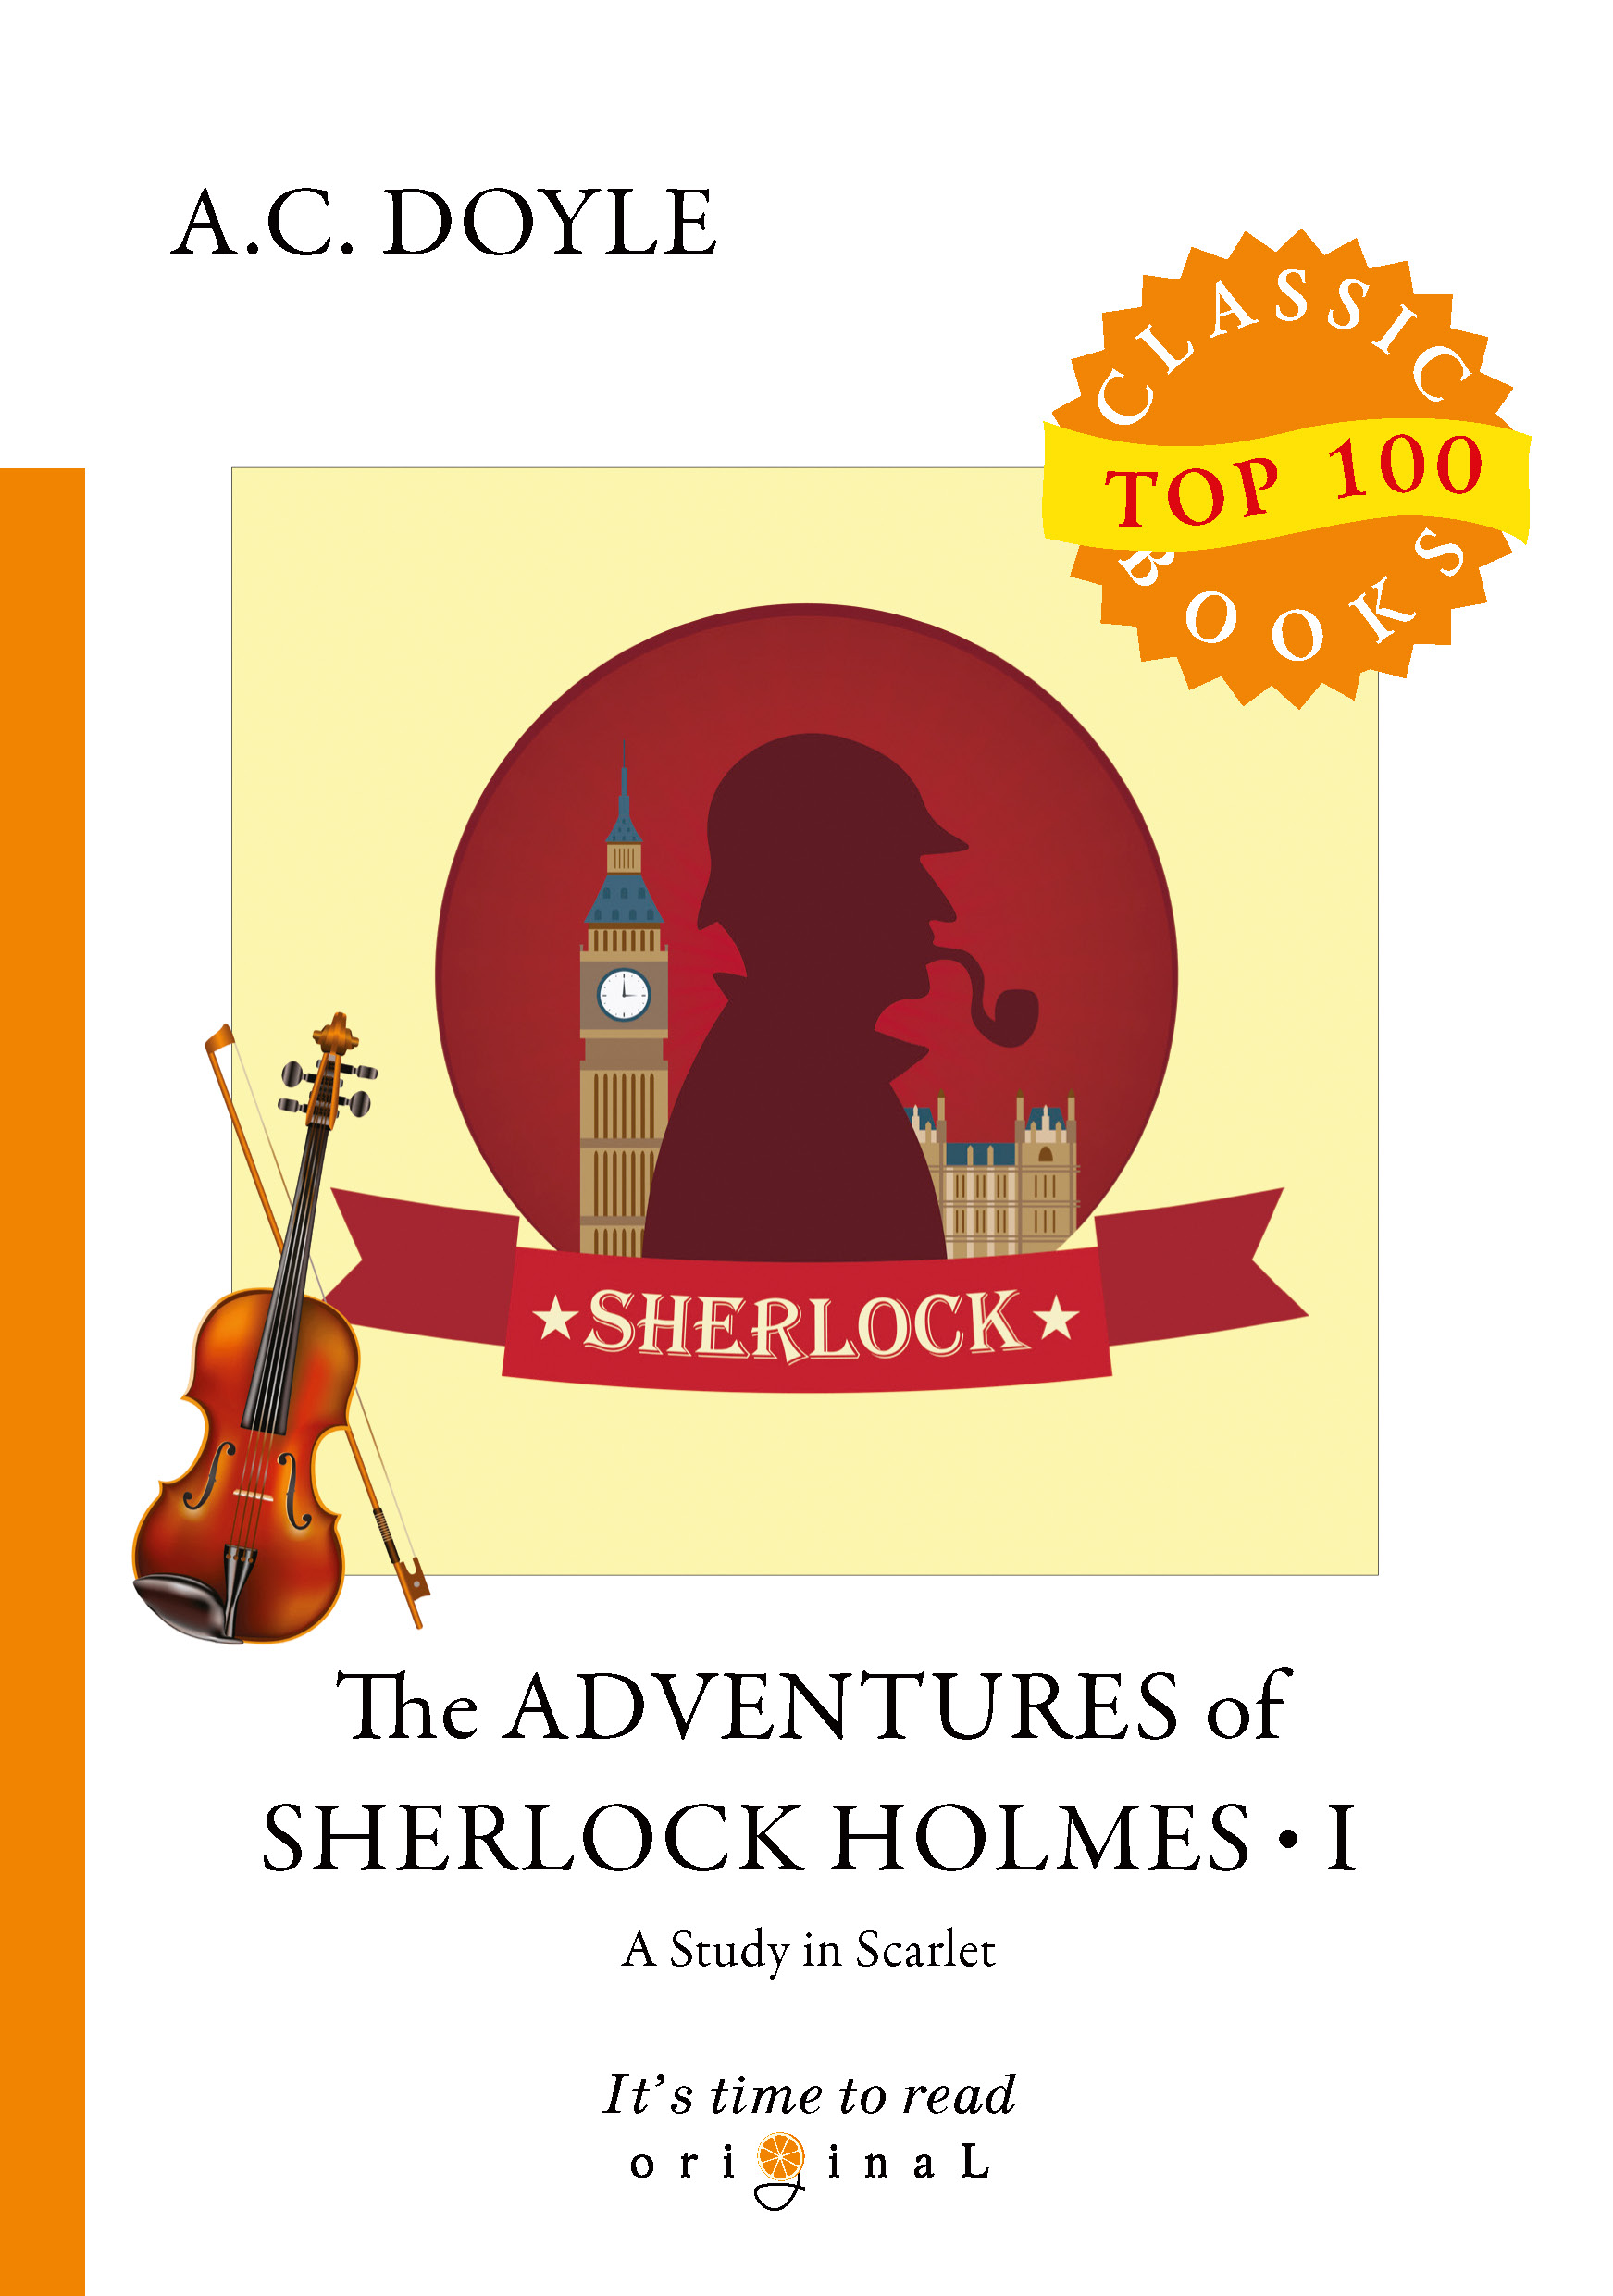 A. C. Doyle The Adventures of Sherlock Holmes I arthur conan doyle last adventures of sherlock holmes аудиокнига mp3